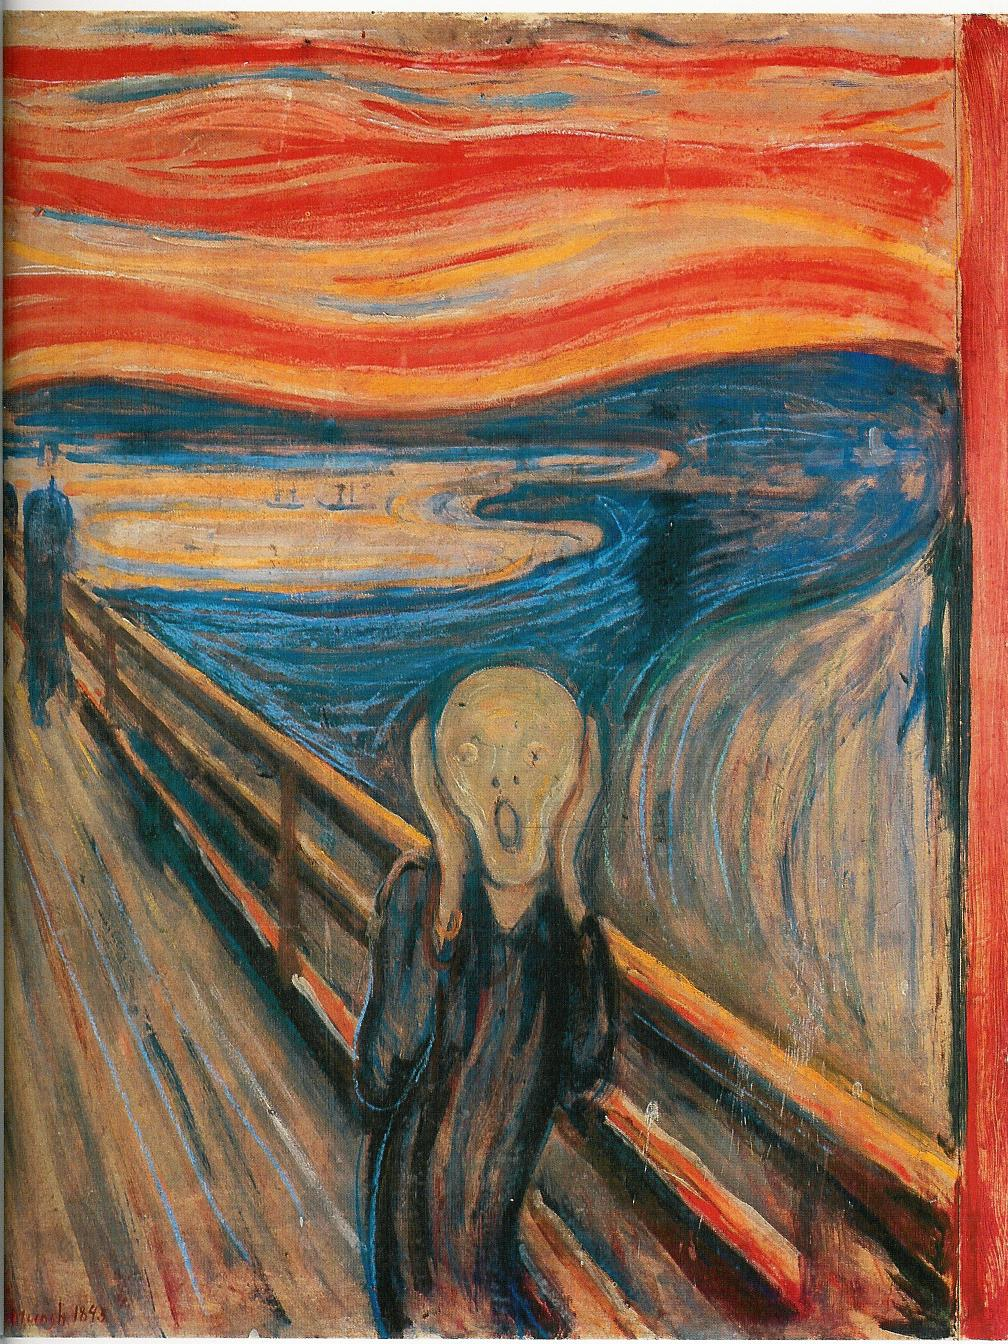 Edvard Munch – The Scream (1893)